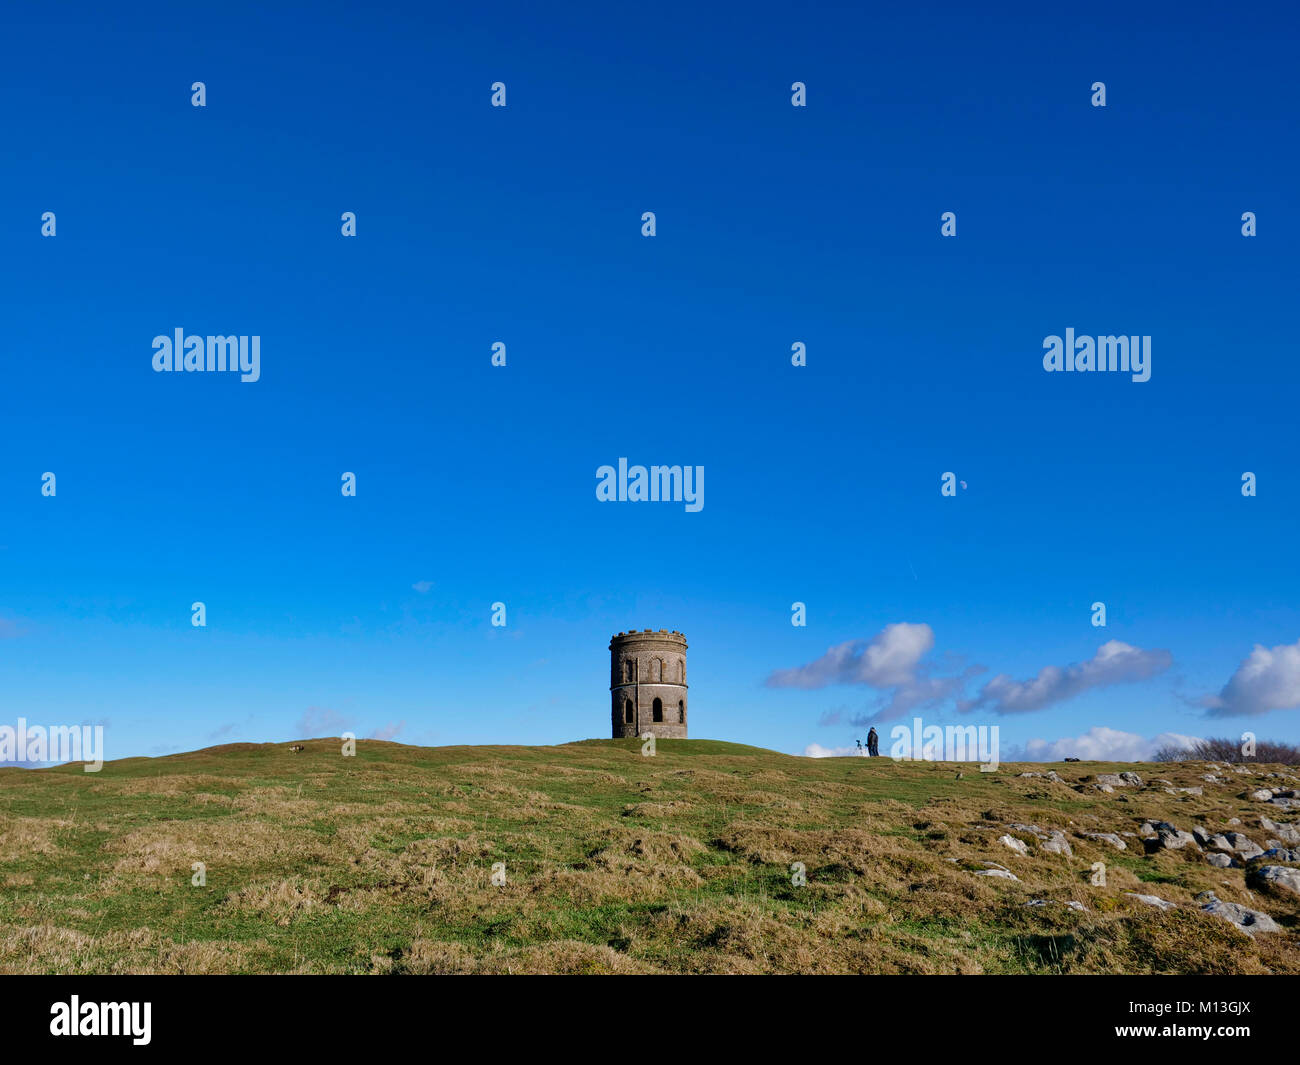 Solomon's Temple, Buxton. 26th Jan, 2018. UK Weather: photographers taking pictures of Solomon's Temple - Stock Image